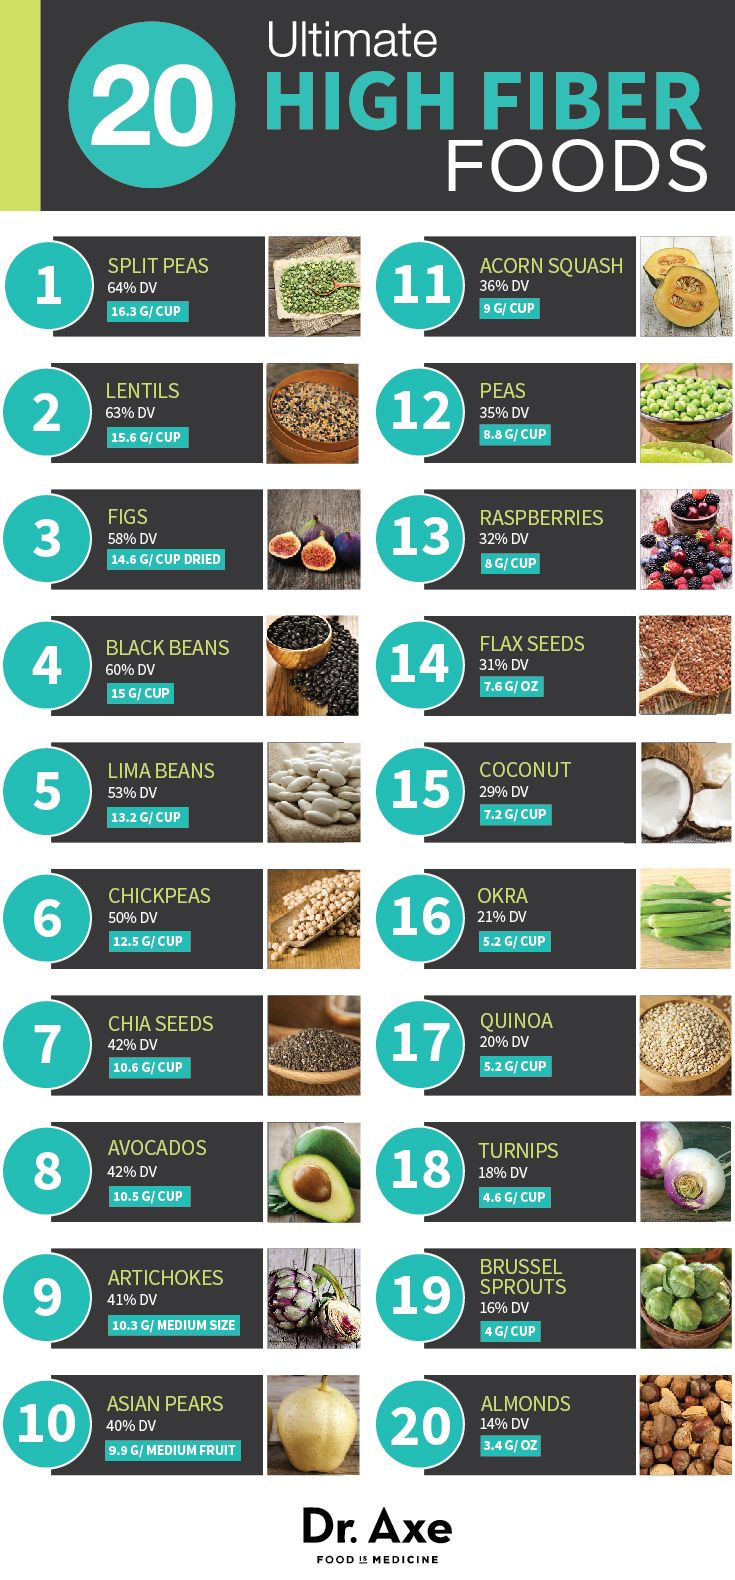 20 Ultimate High Fiber Foods http://www.draxe.com #health #natural #holistic�